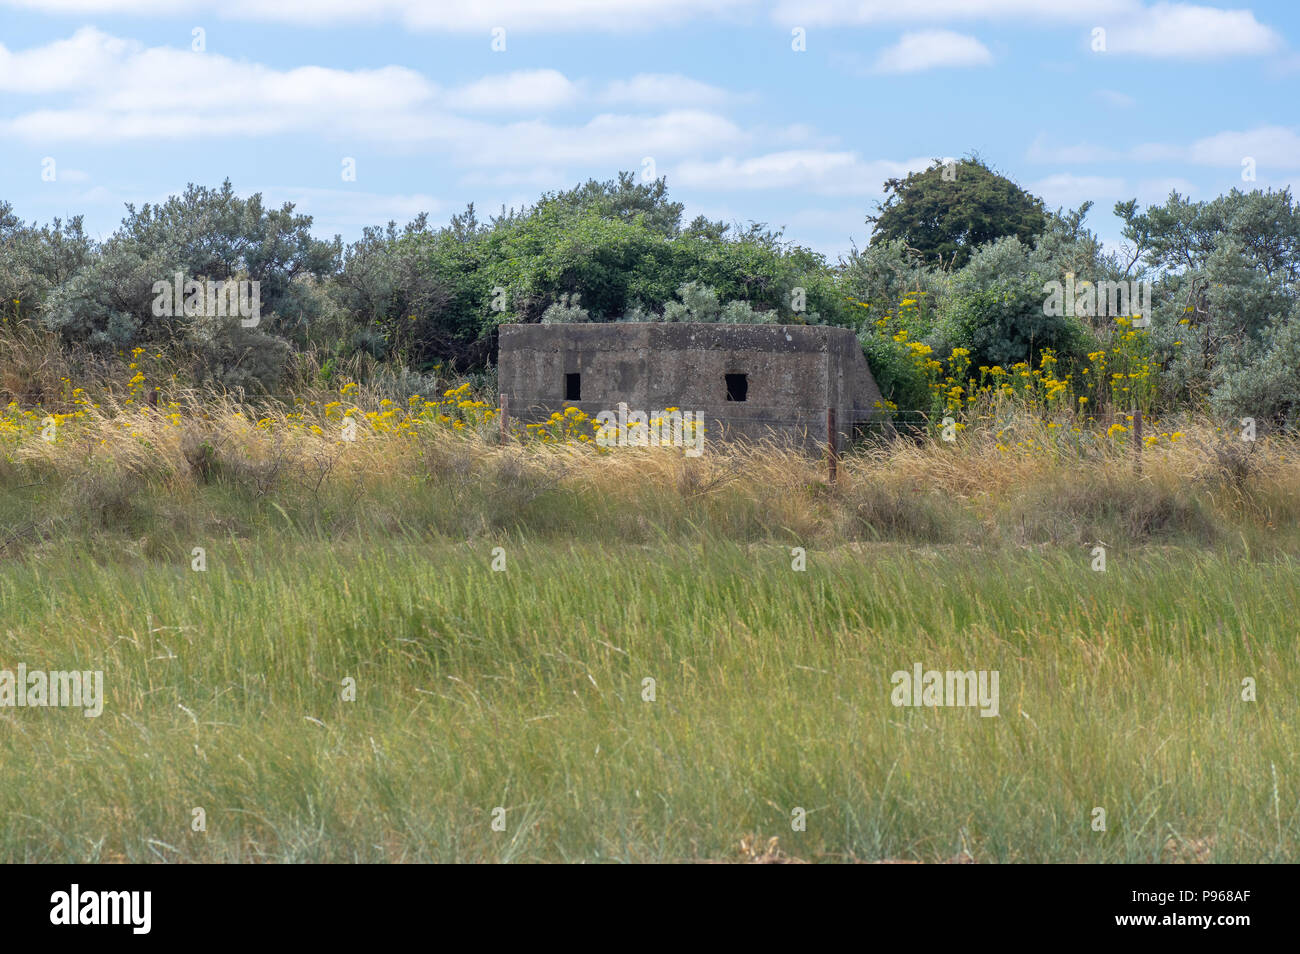 World War Two pillbox at Gibraltar Point. Military defense standing in National Nature Reserve near Skegness in Lincolnshire, UK - Stock Image